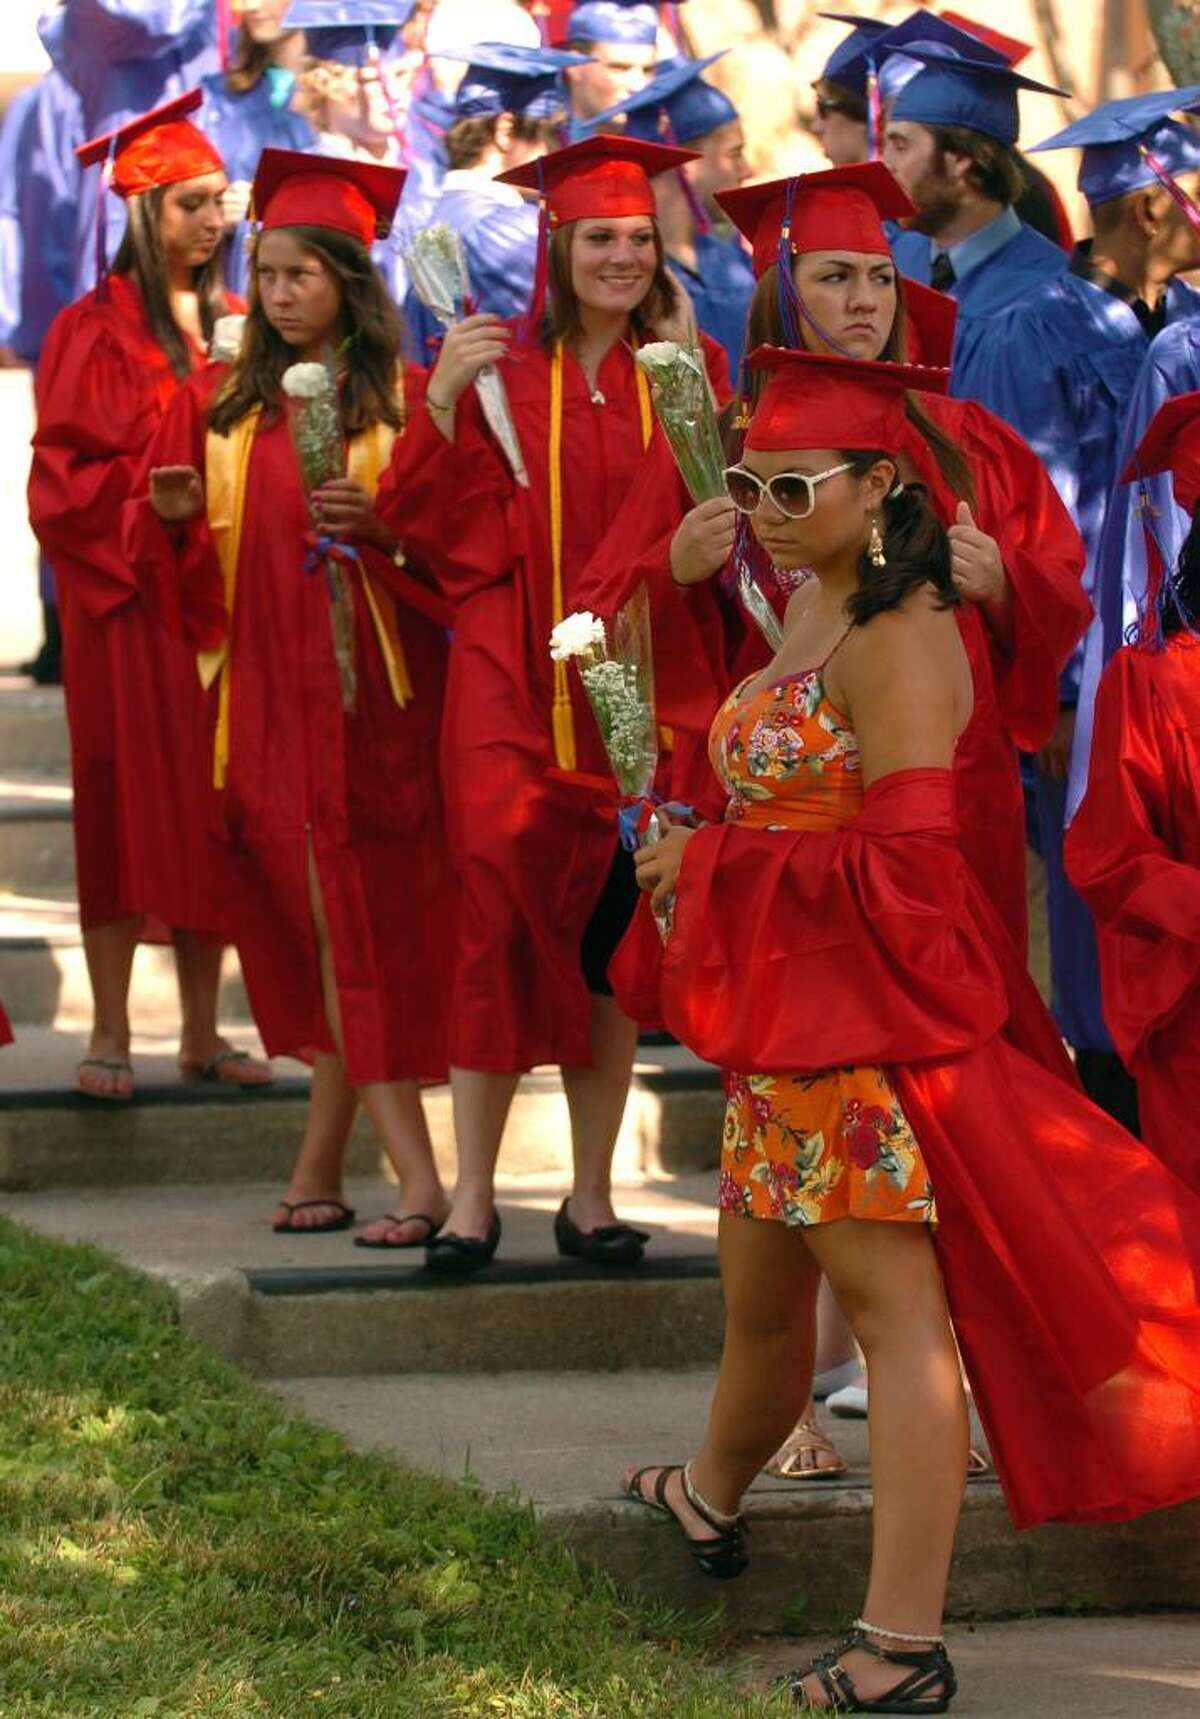 Because of the high temperatures, graduate Carly Cammarano keeps her graduation gown off to keep cool, before the start of Foran High School's Graduation Exercises in Milford, Conn. on Wednesday June 23, 2010.